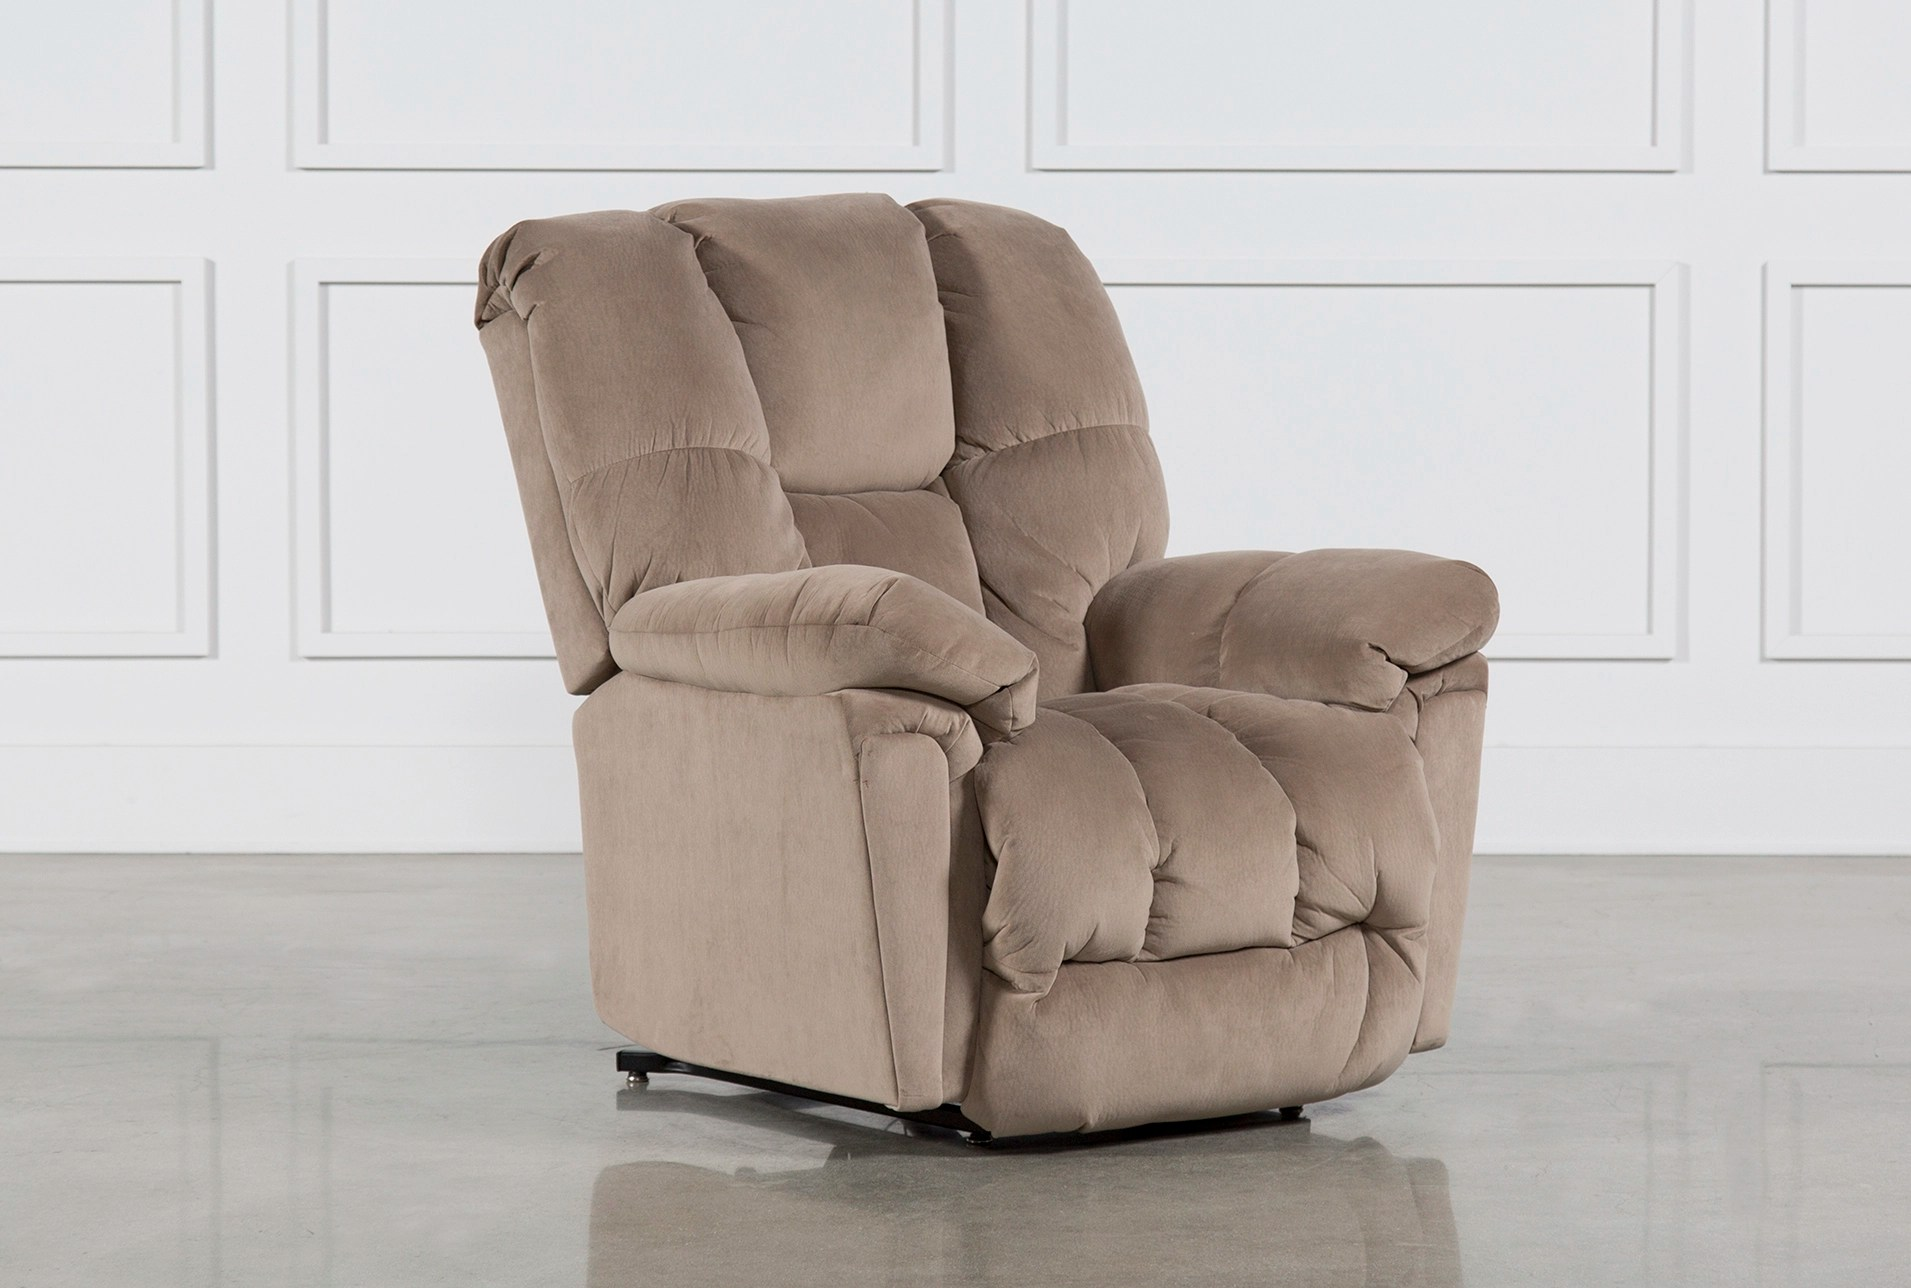 Double Wide Recliner Chair Recliner Chairs For Your Home Office Living Spaces